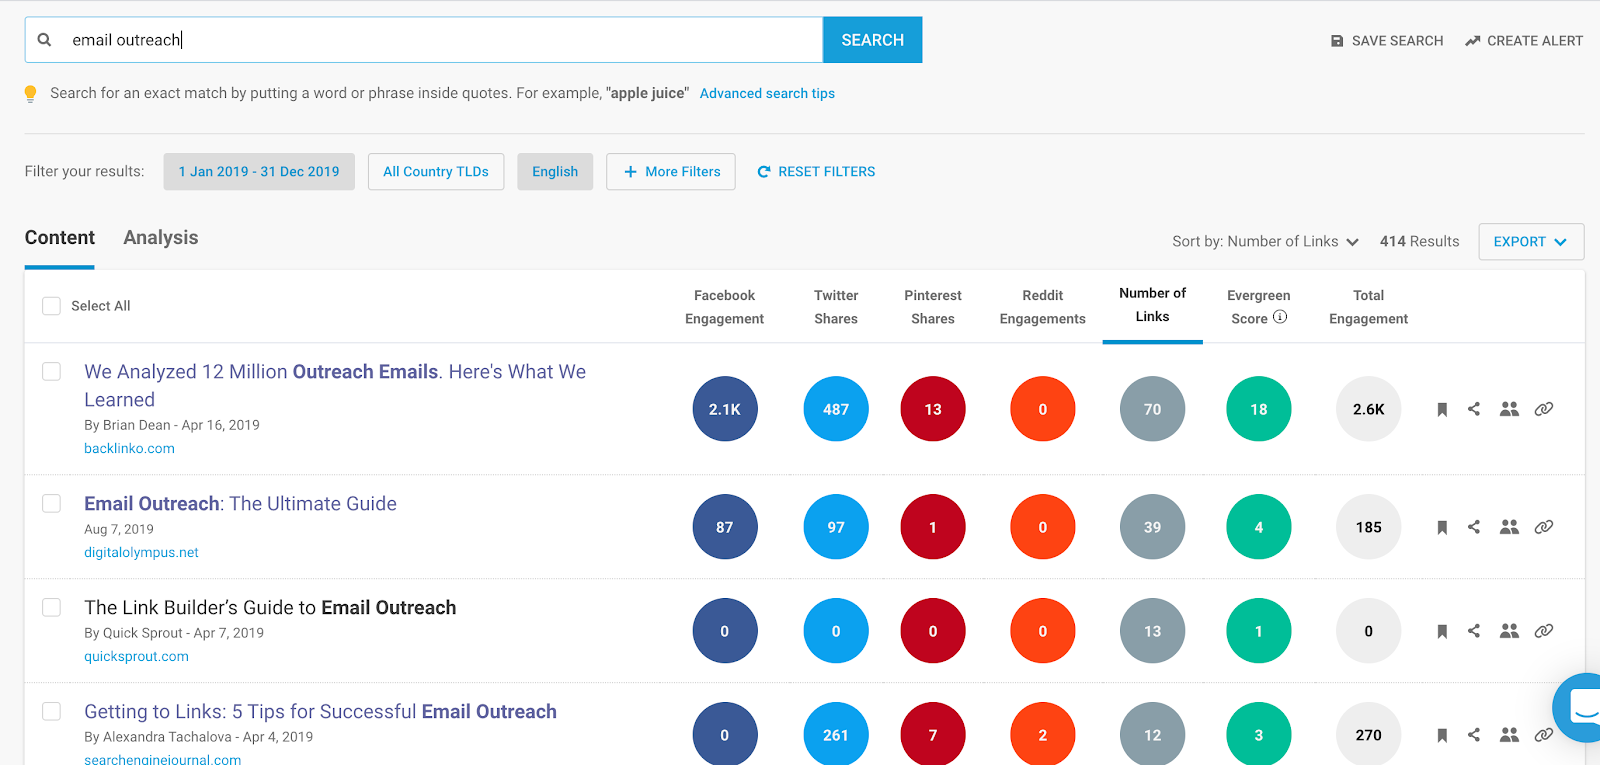 email outreach Buzzsumo search